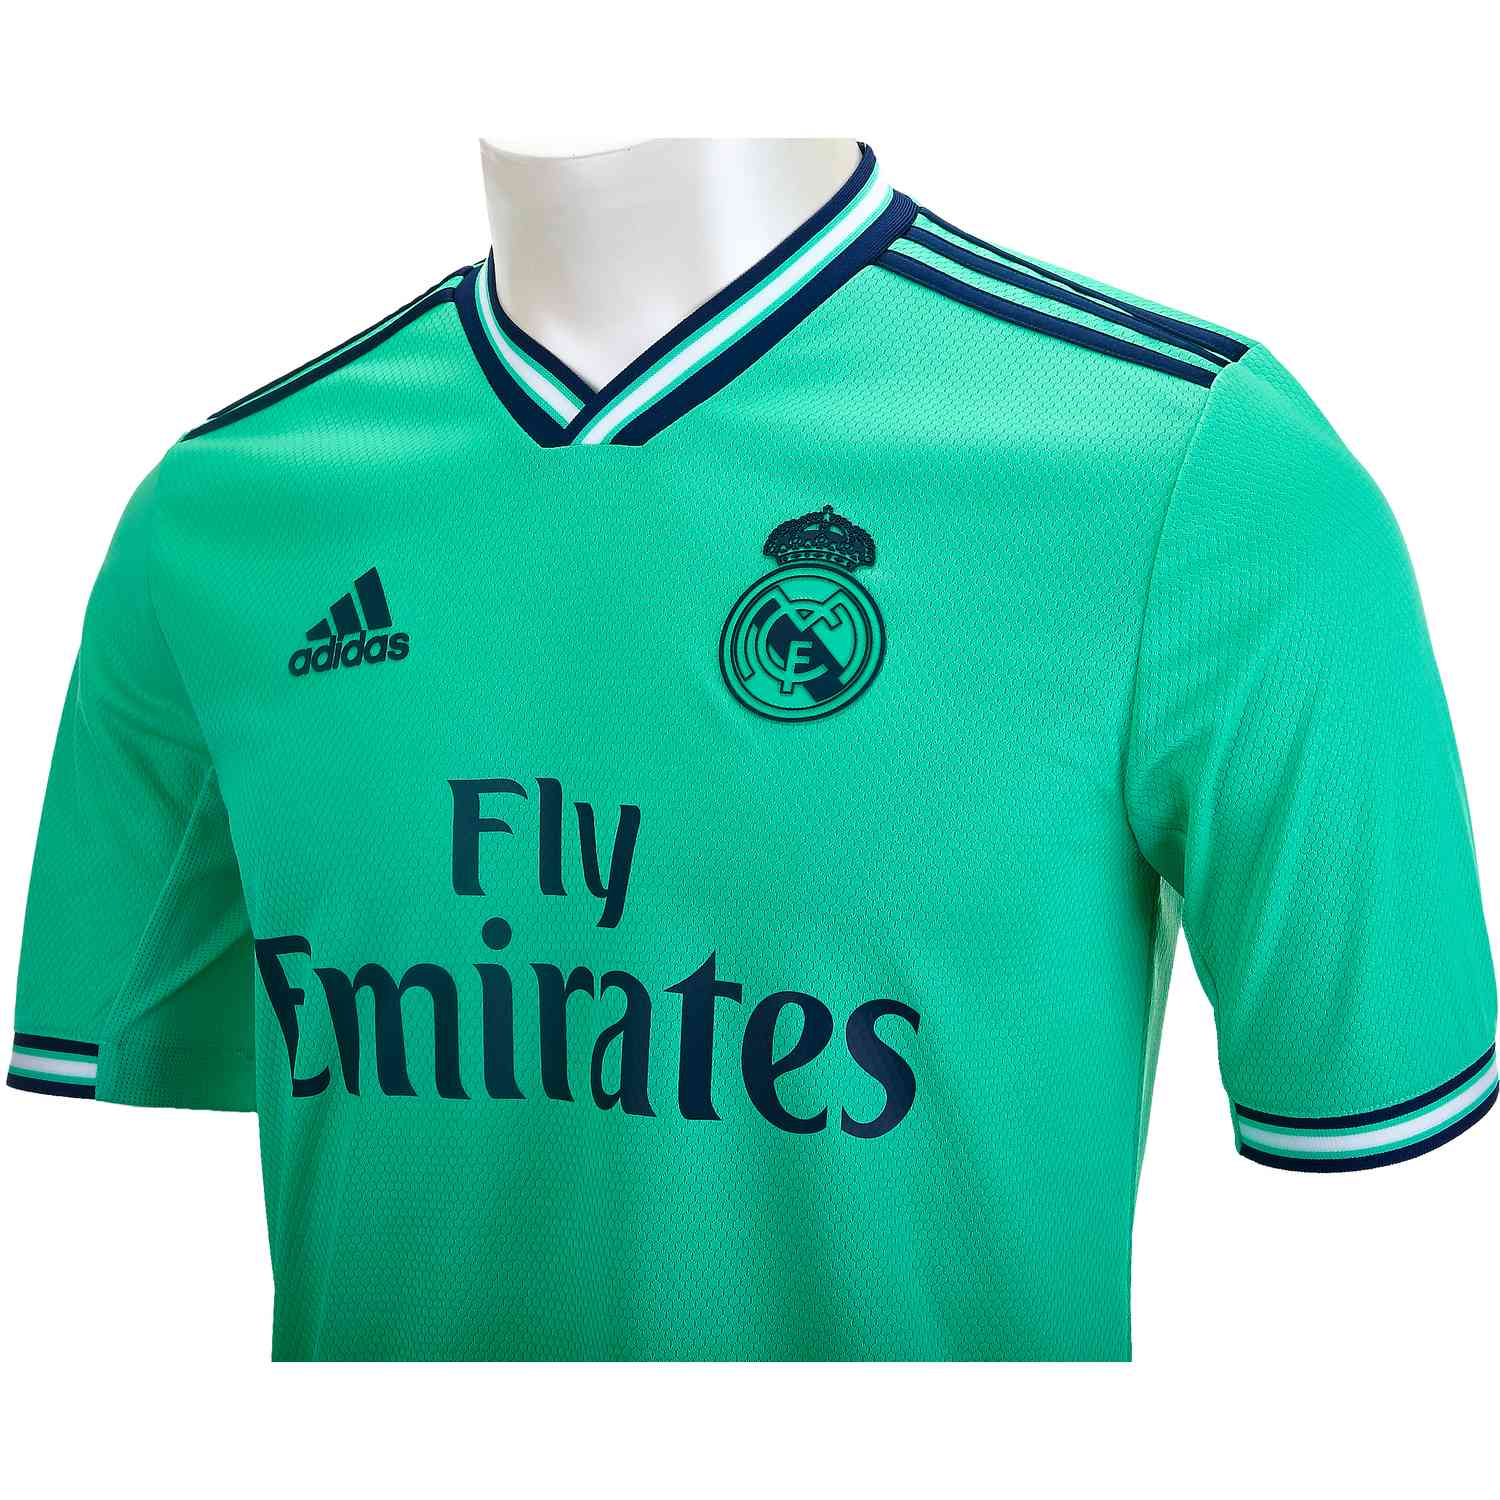 low priced 518a7 b7437 2019/20 Kids adidas Real Madrid 3rd Jersey - Soccer Master